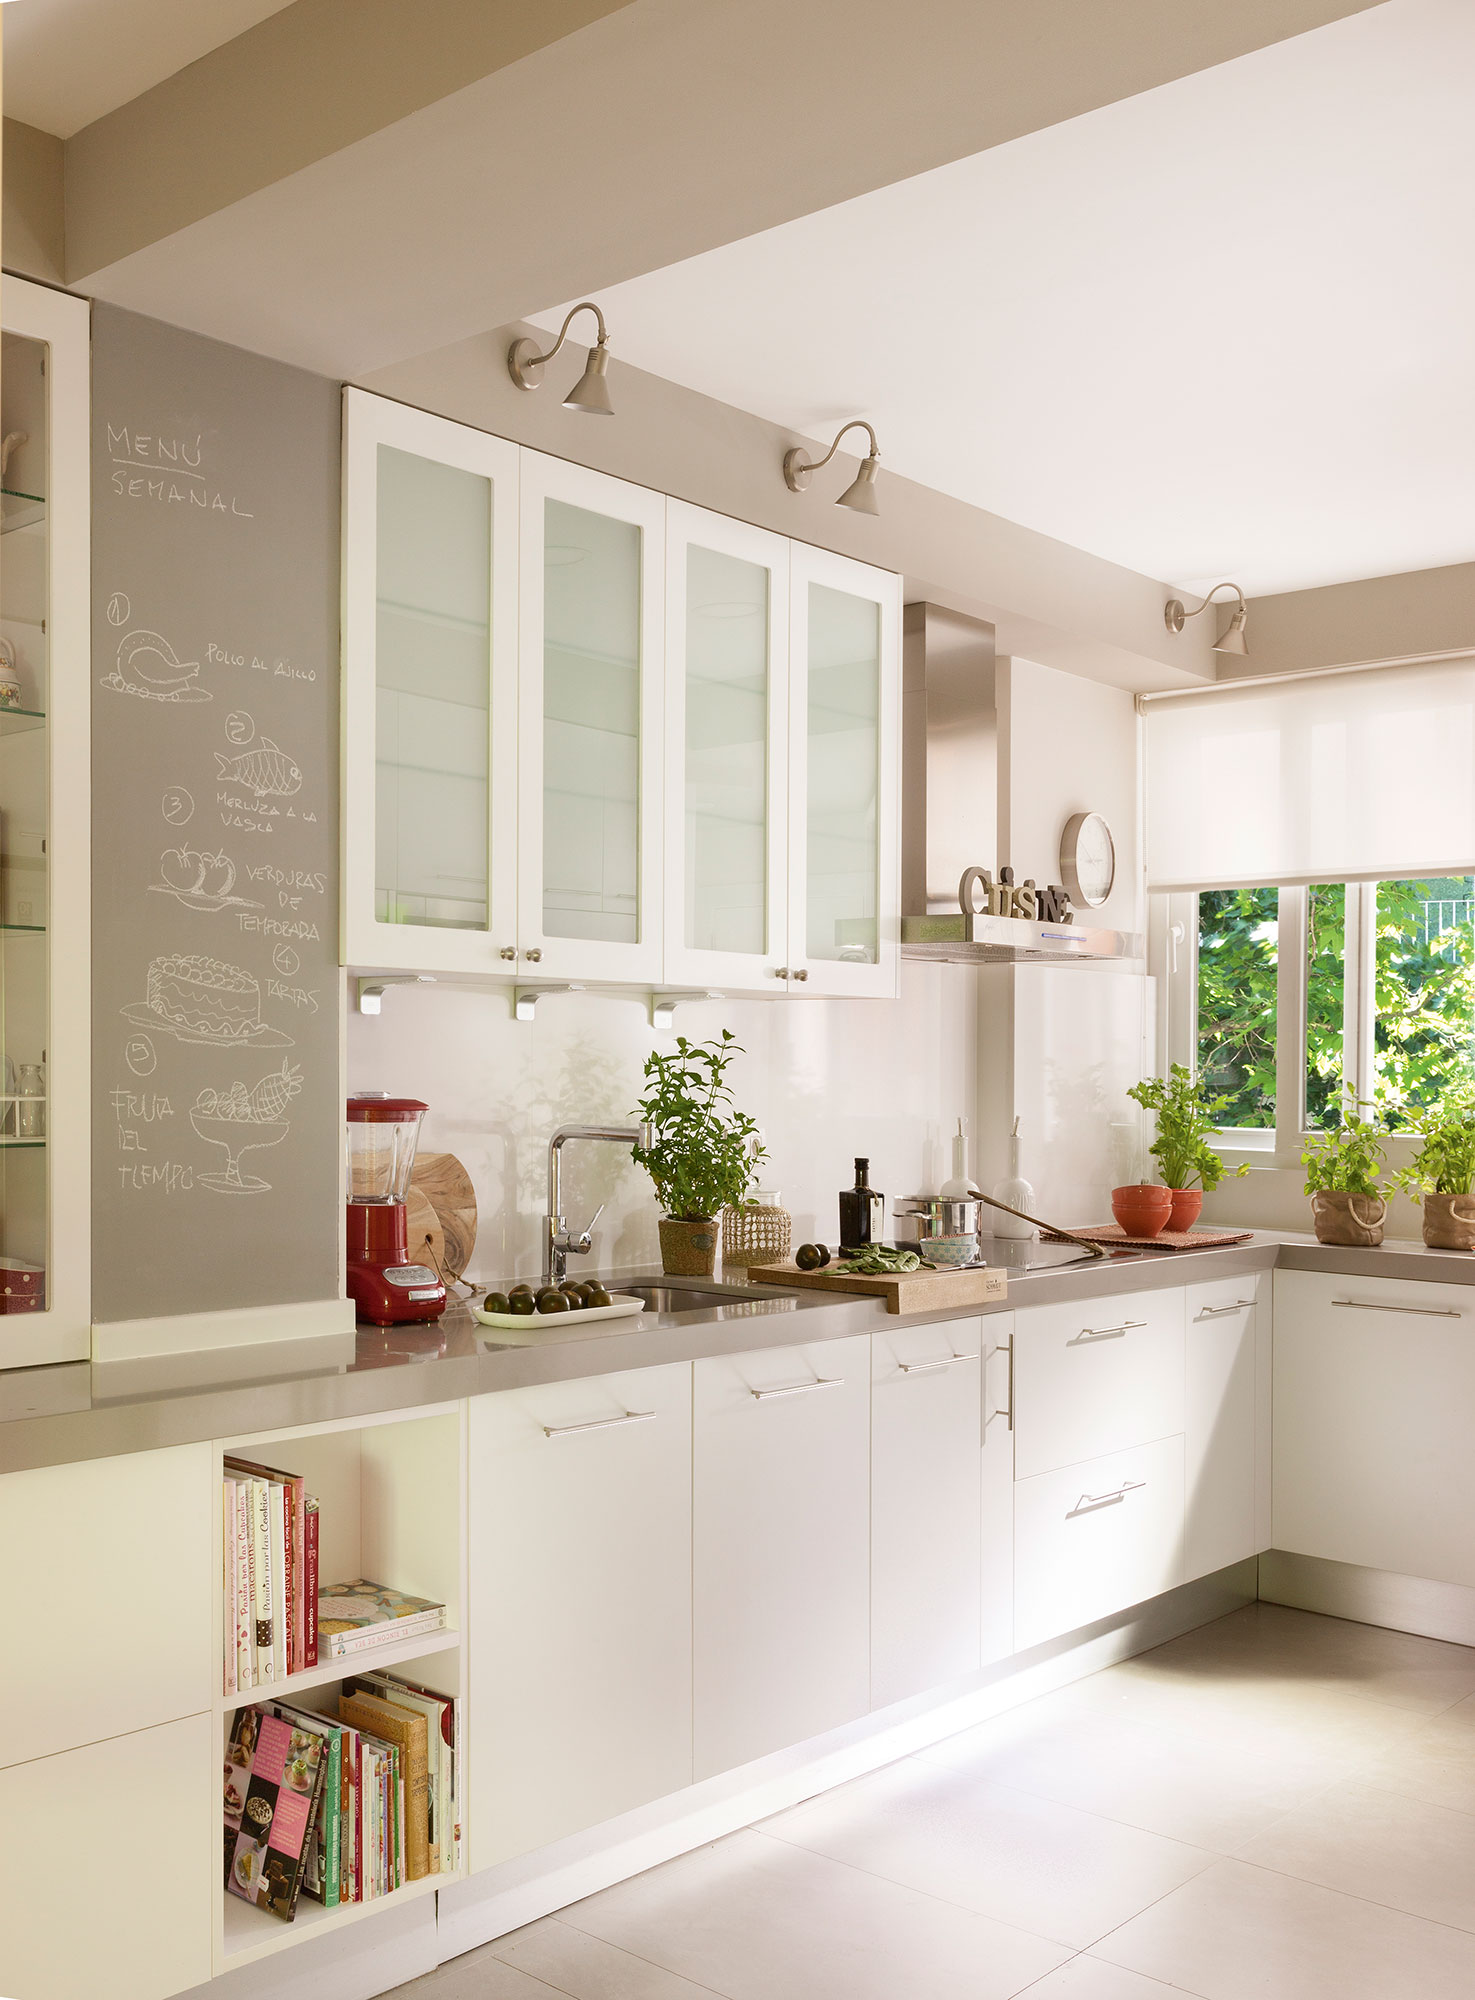 Muebles de cocina blanco y morado ideas for Cocinas con office fotos